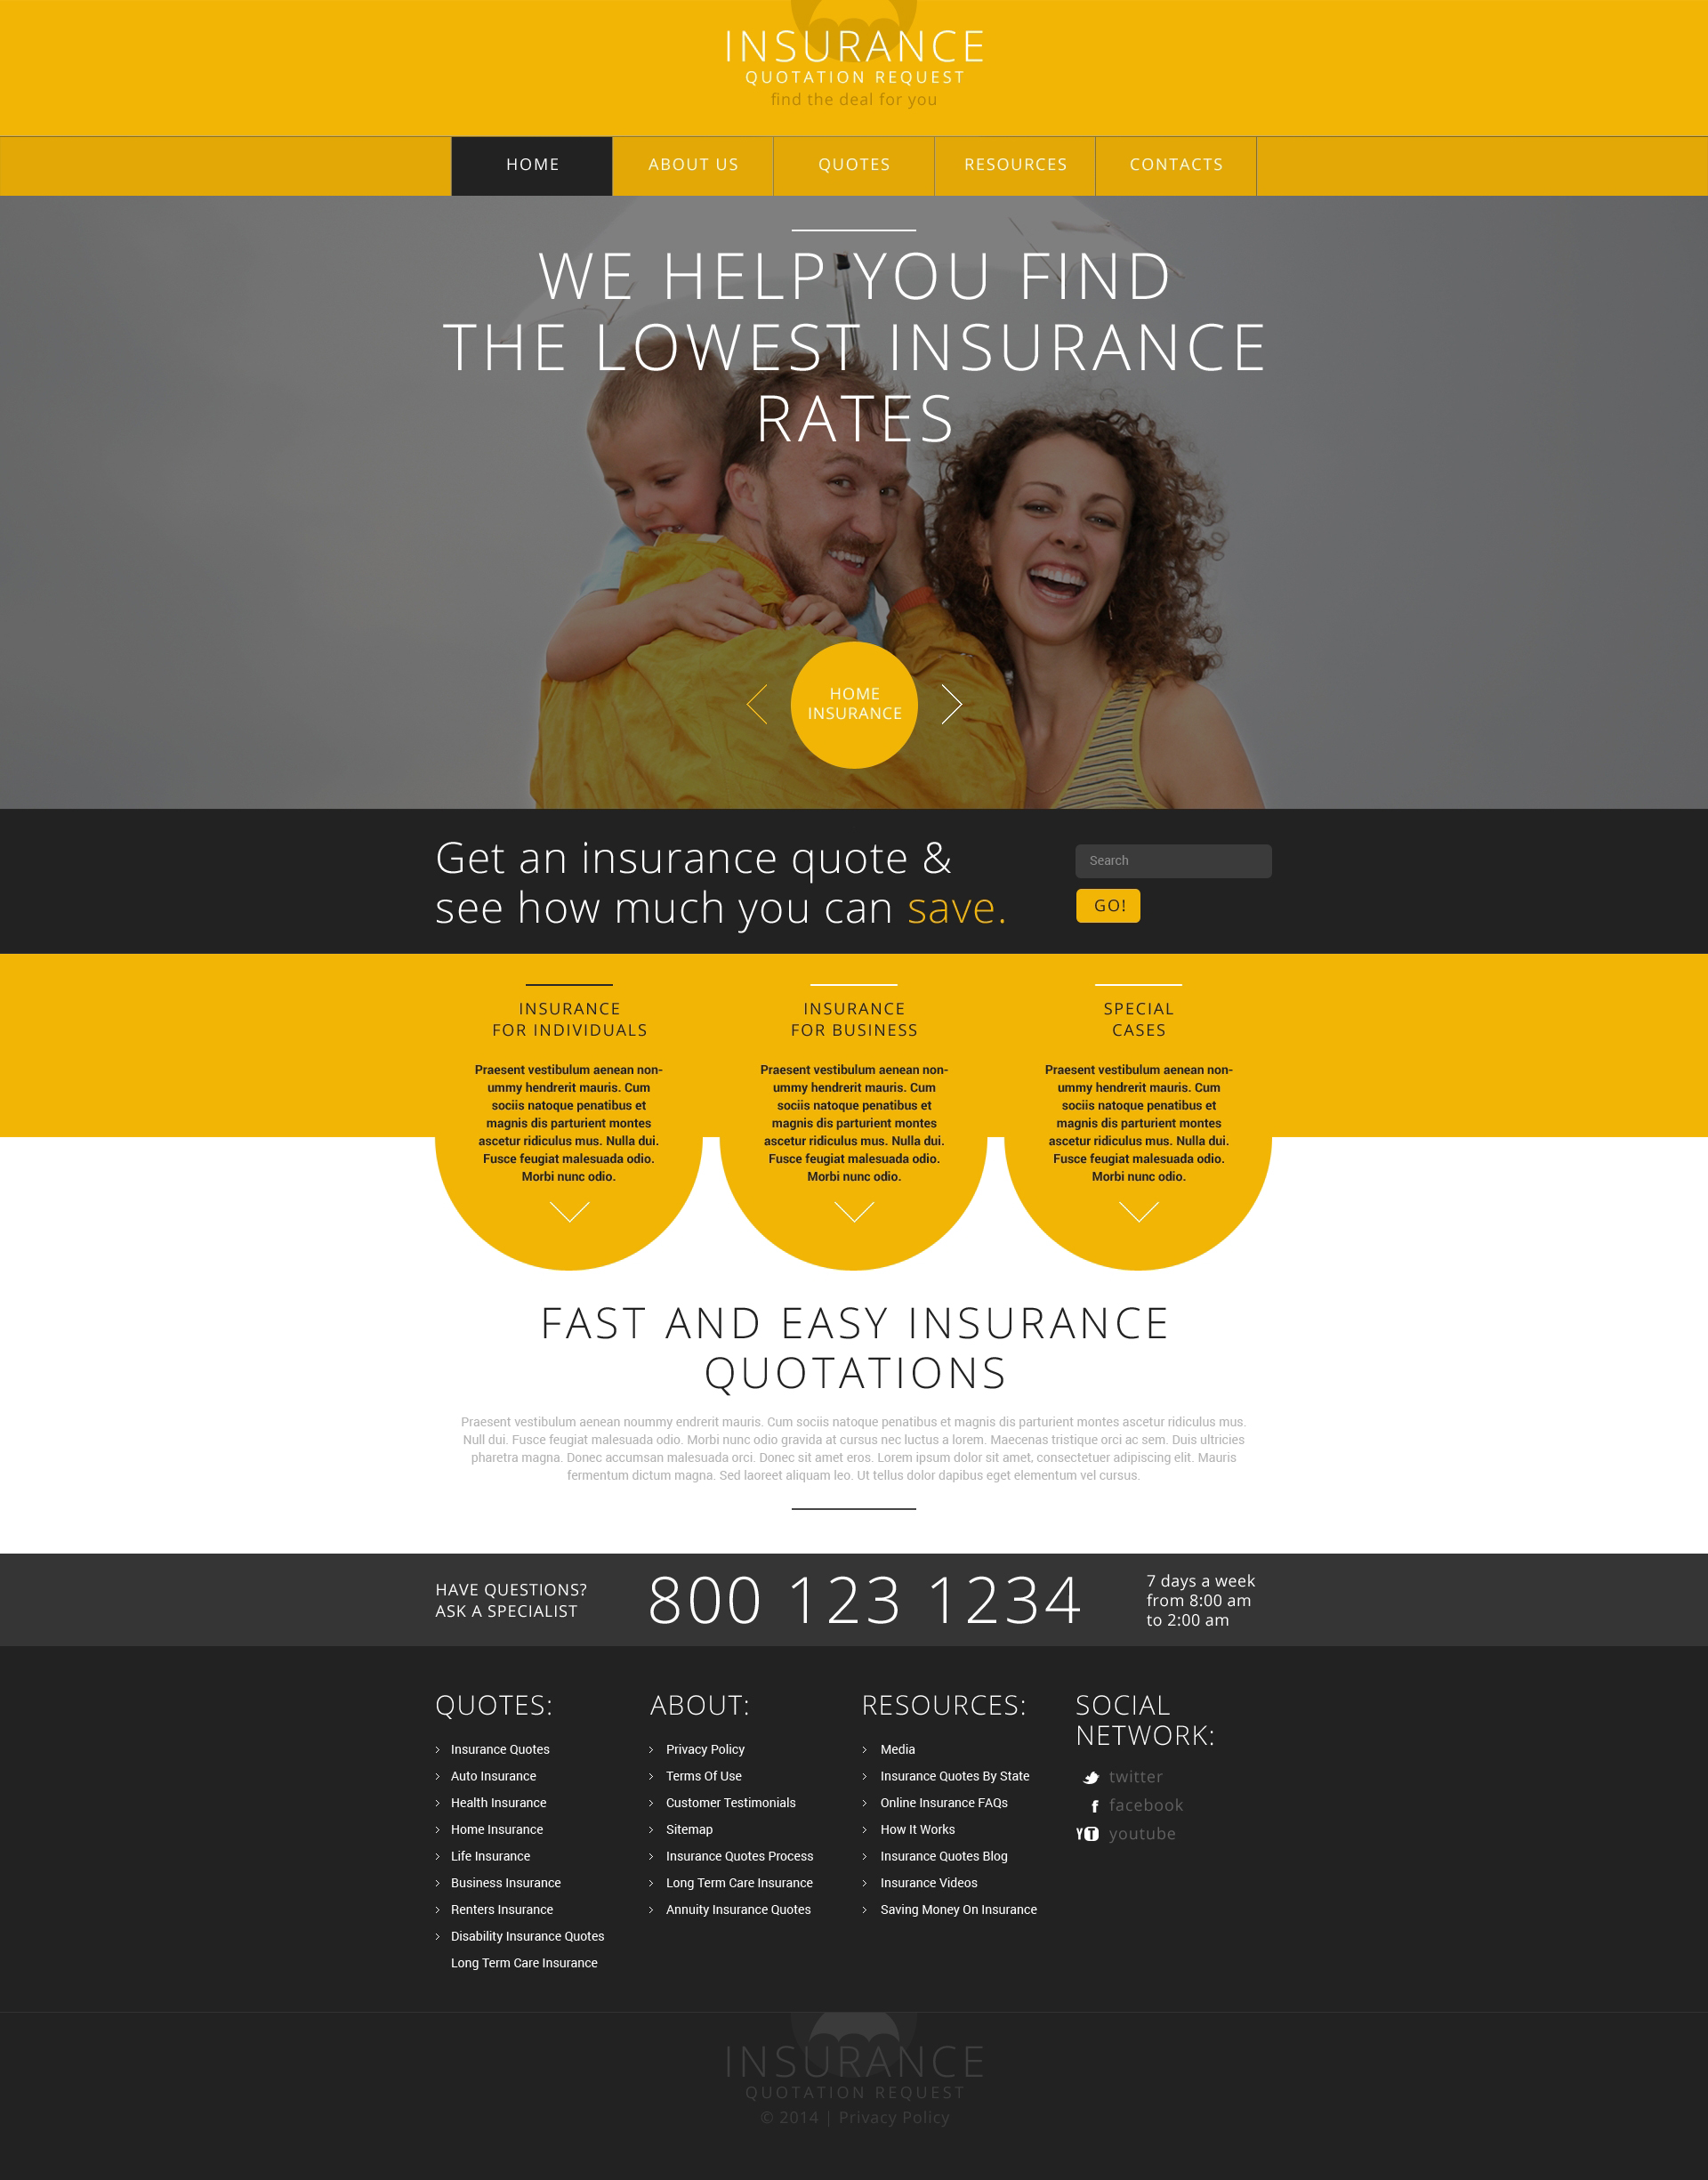 Web Design Analysis Industry Insurance 8 Arteqo Consulting